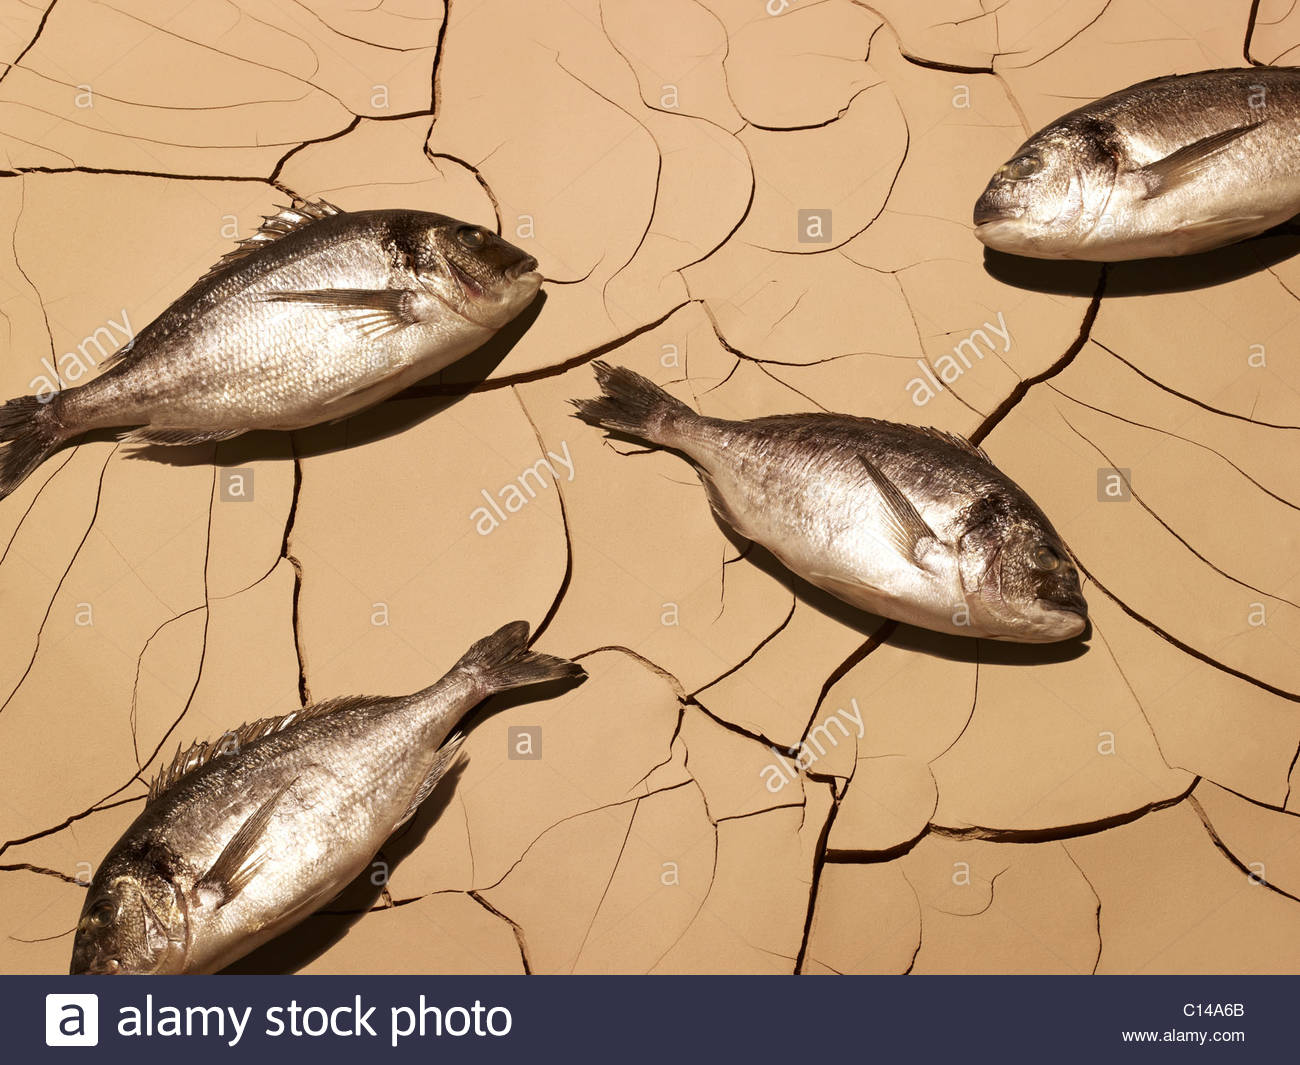 Dead fish laying on cracked mud - Stock Image